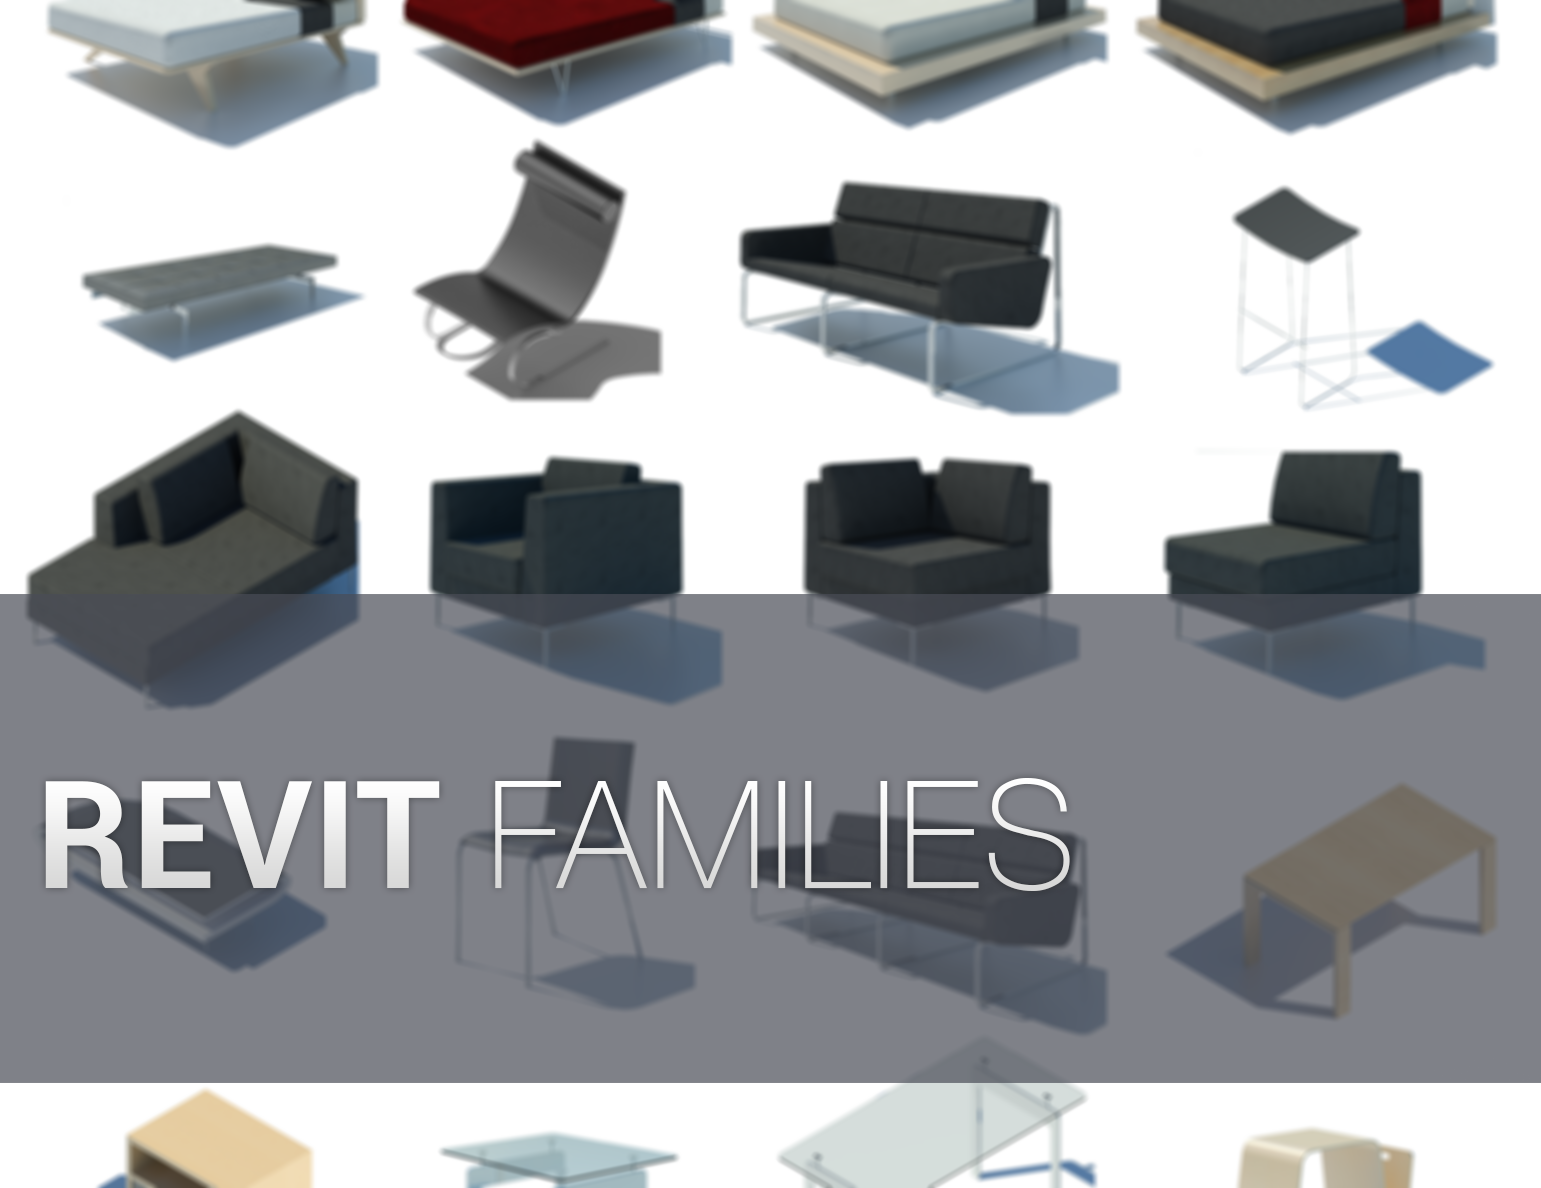 Top 6 Recommended Sites For Revit Families